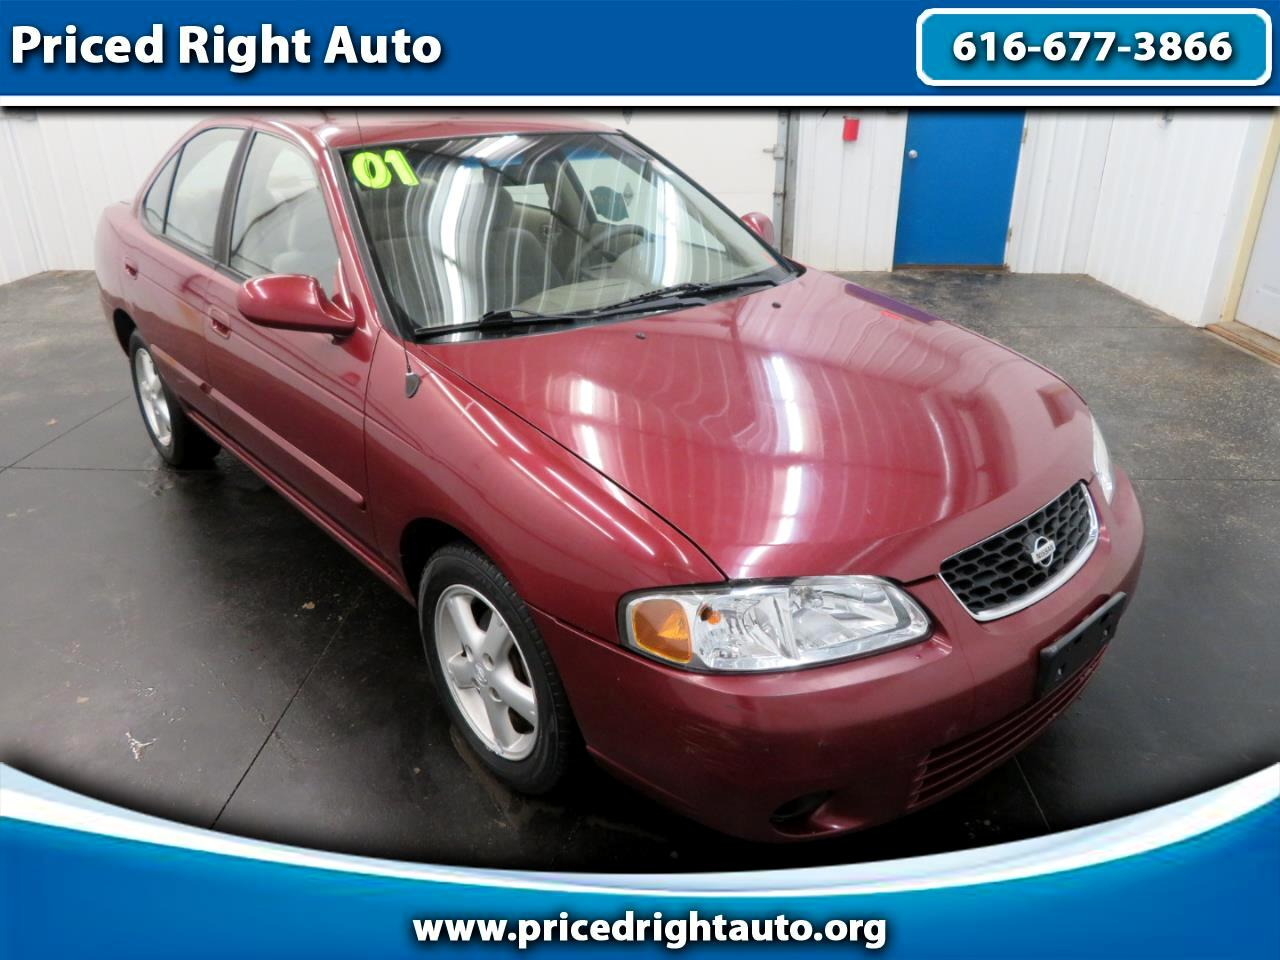 Nissan Sentra 4dr Sdn GXE Auto 2001